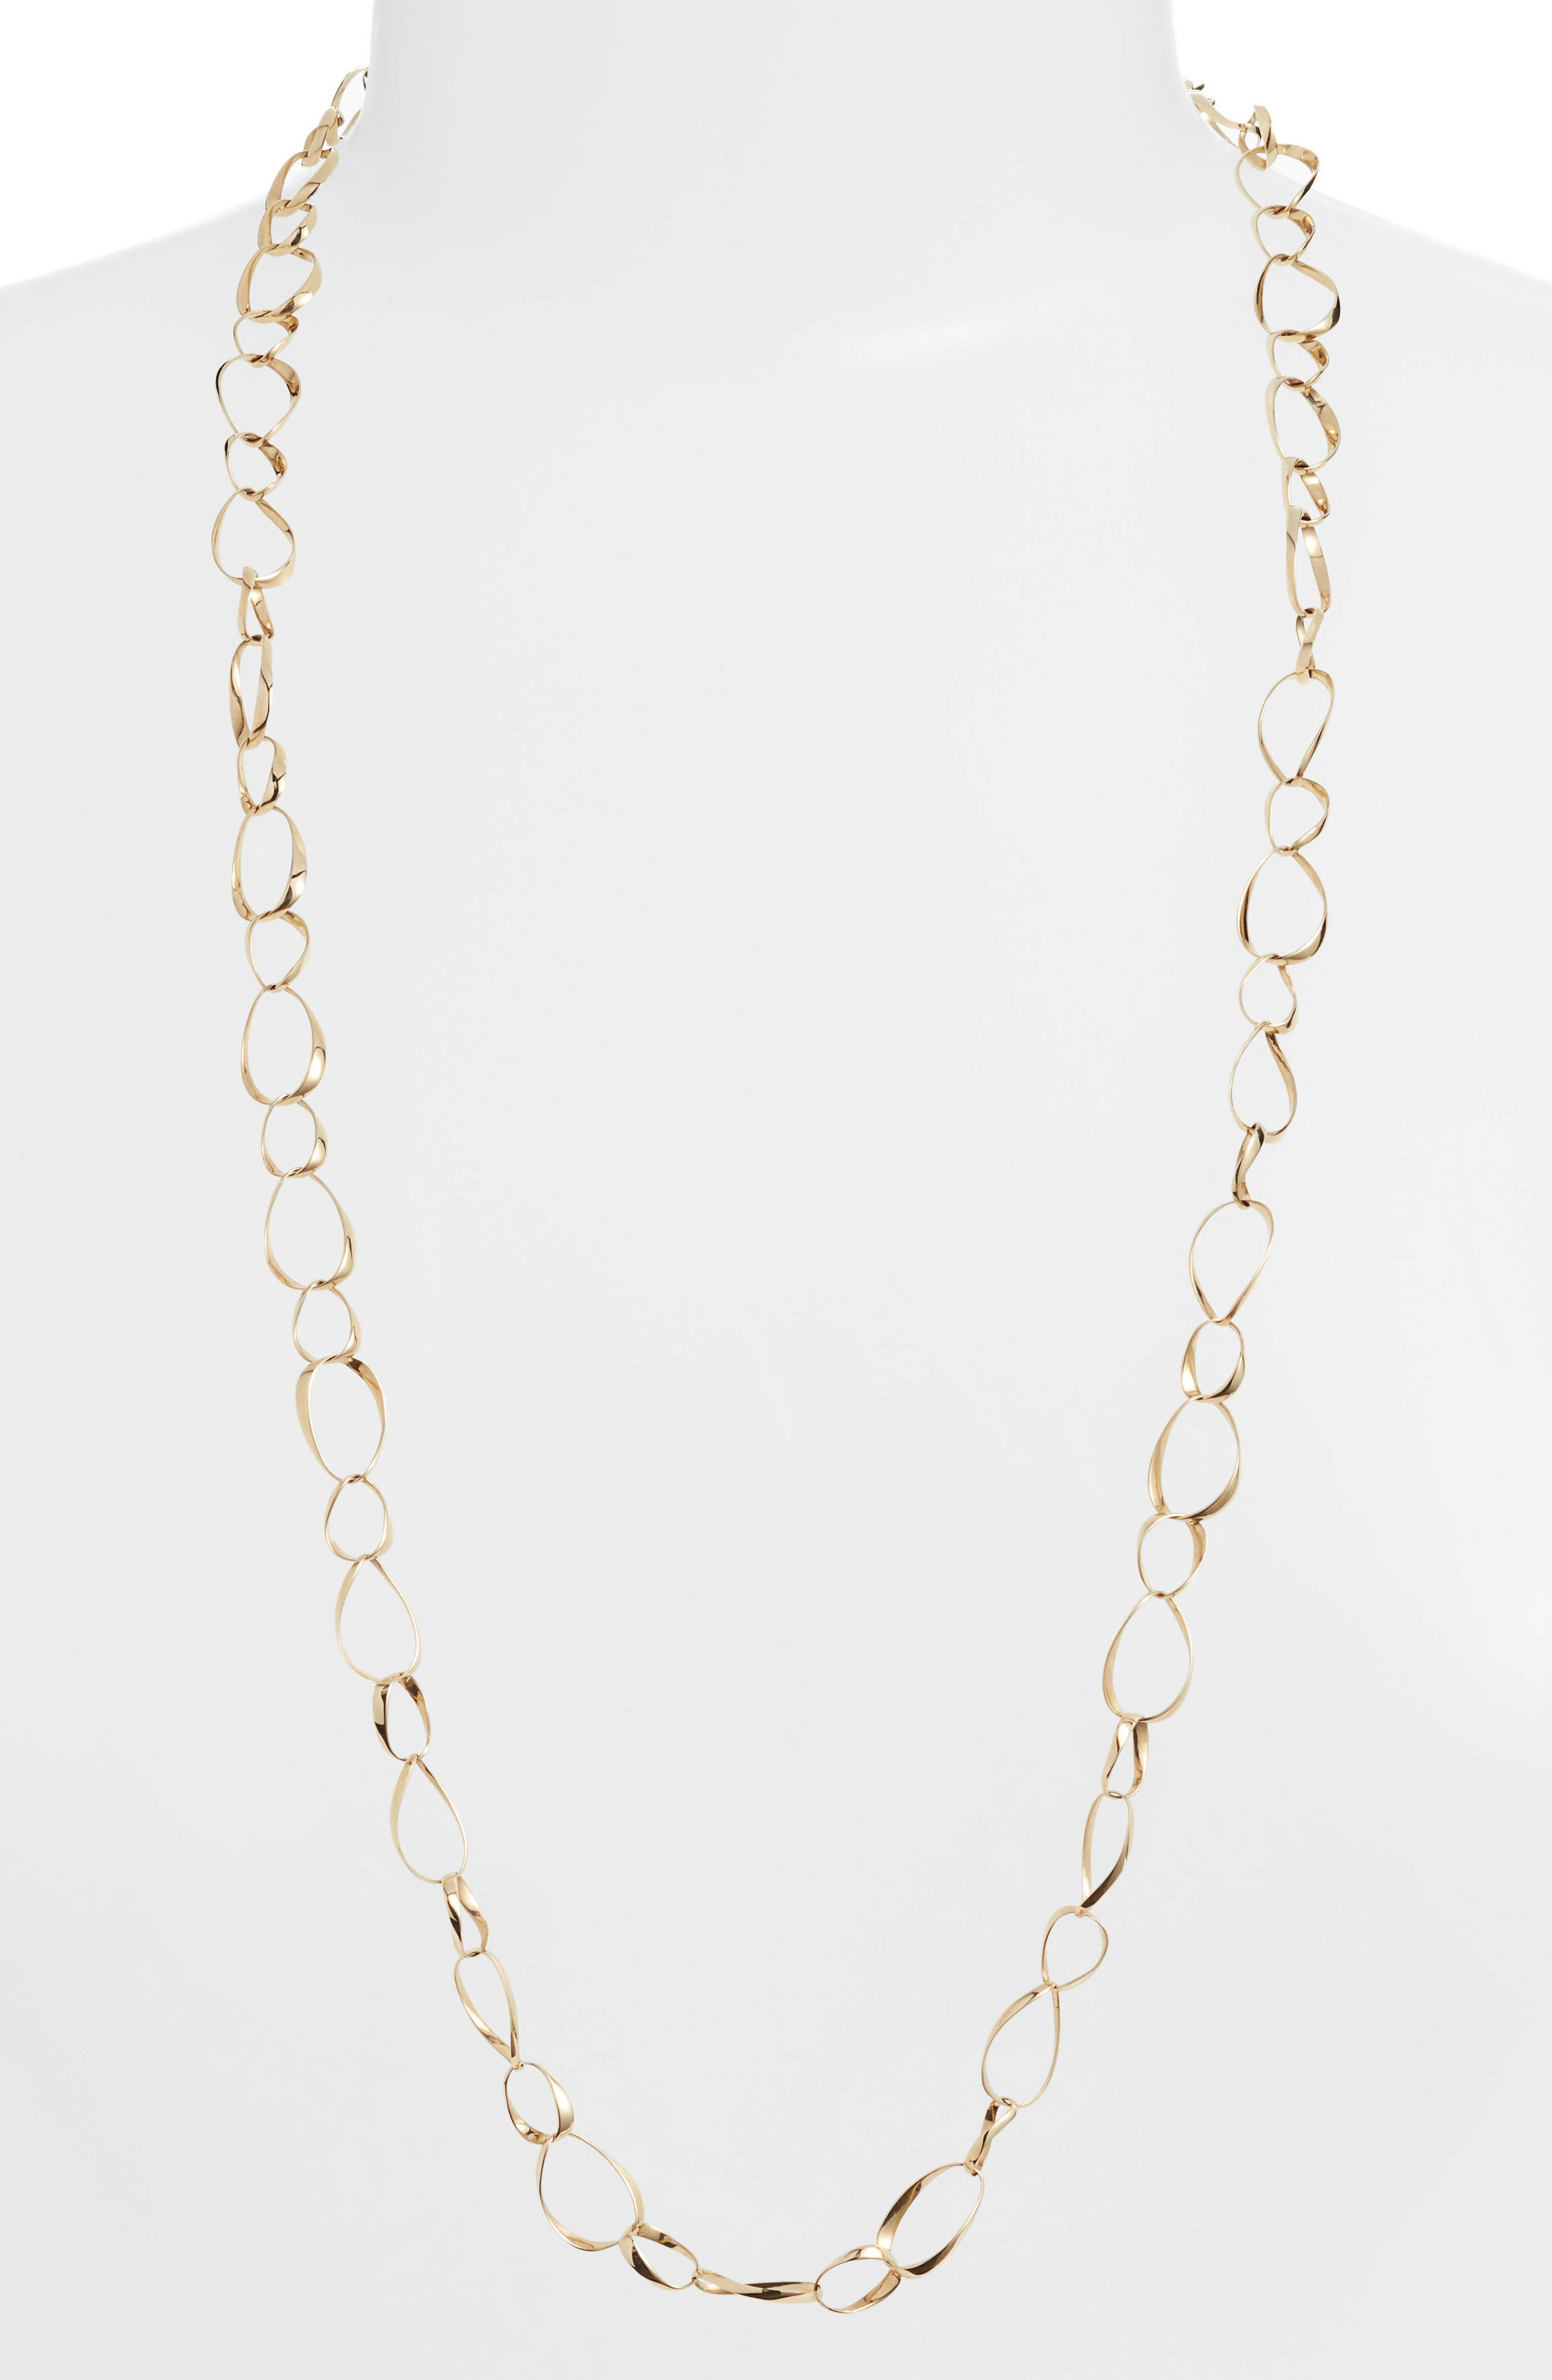 Artfully twisted links of 14-karat gold give this wardrobe-essential chain lovely sculptural interest. Style Name: Bony Levy Long 14K Gold Oval Link Necklace (Nordstrom Exclusive). Style Number: 5827658. Available in stores.